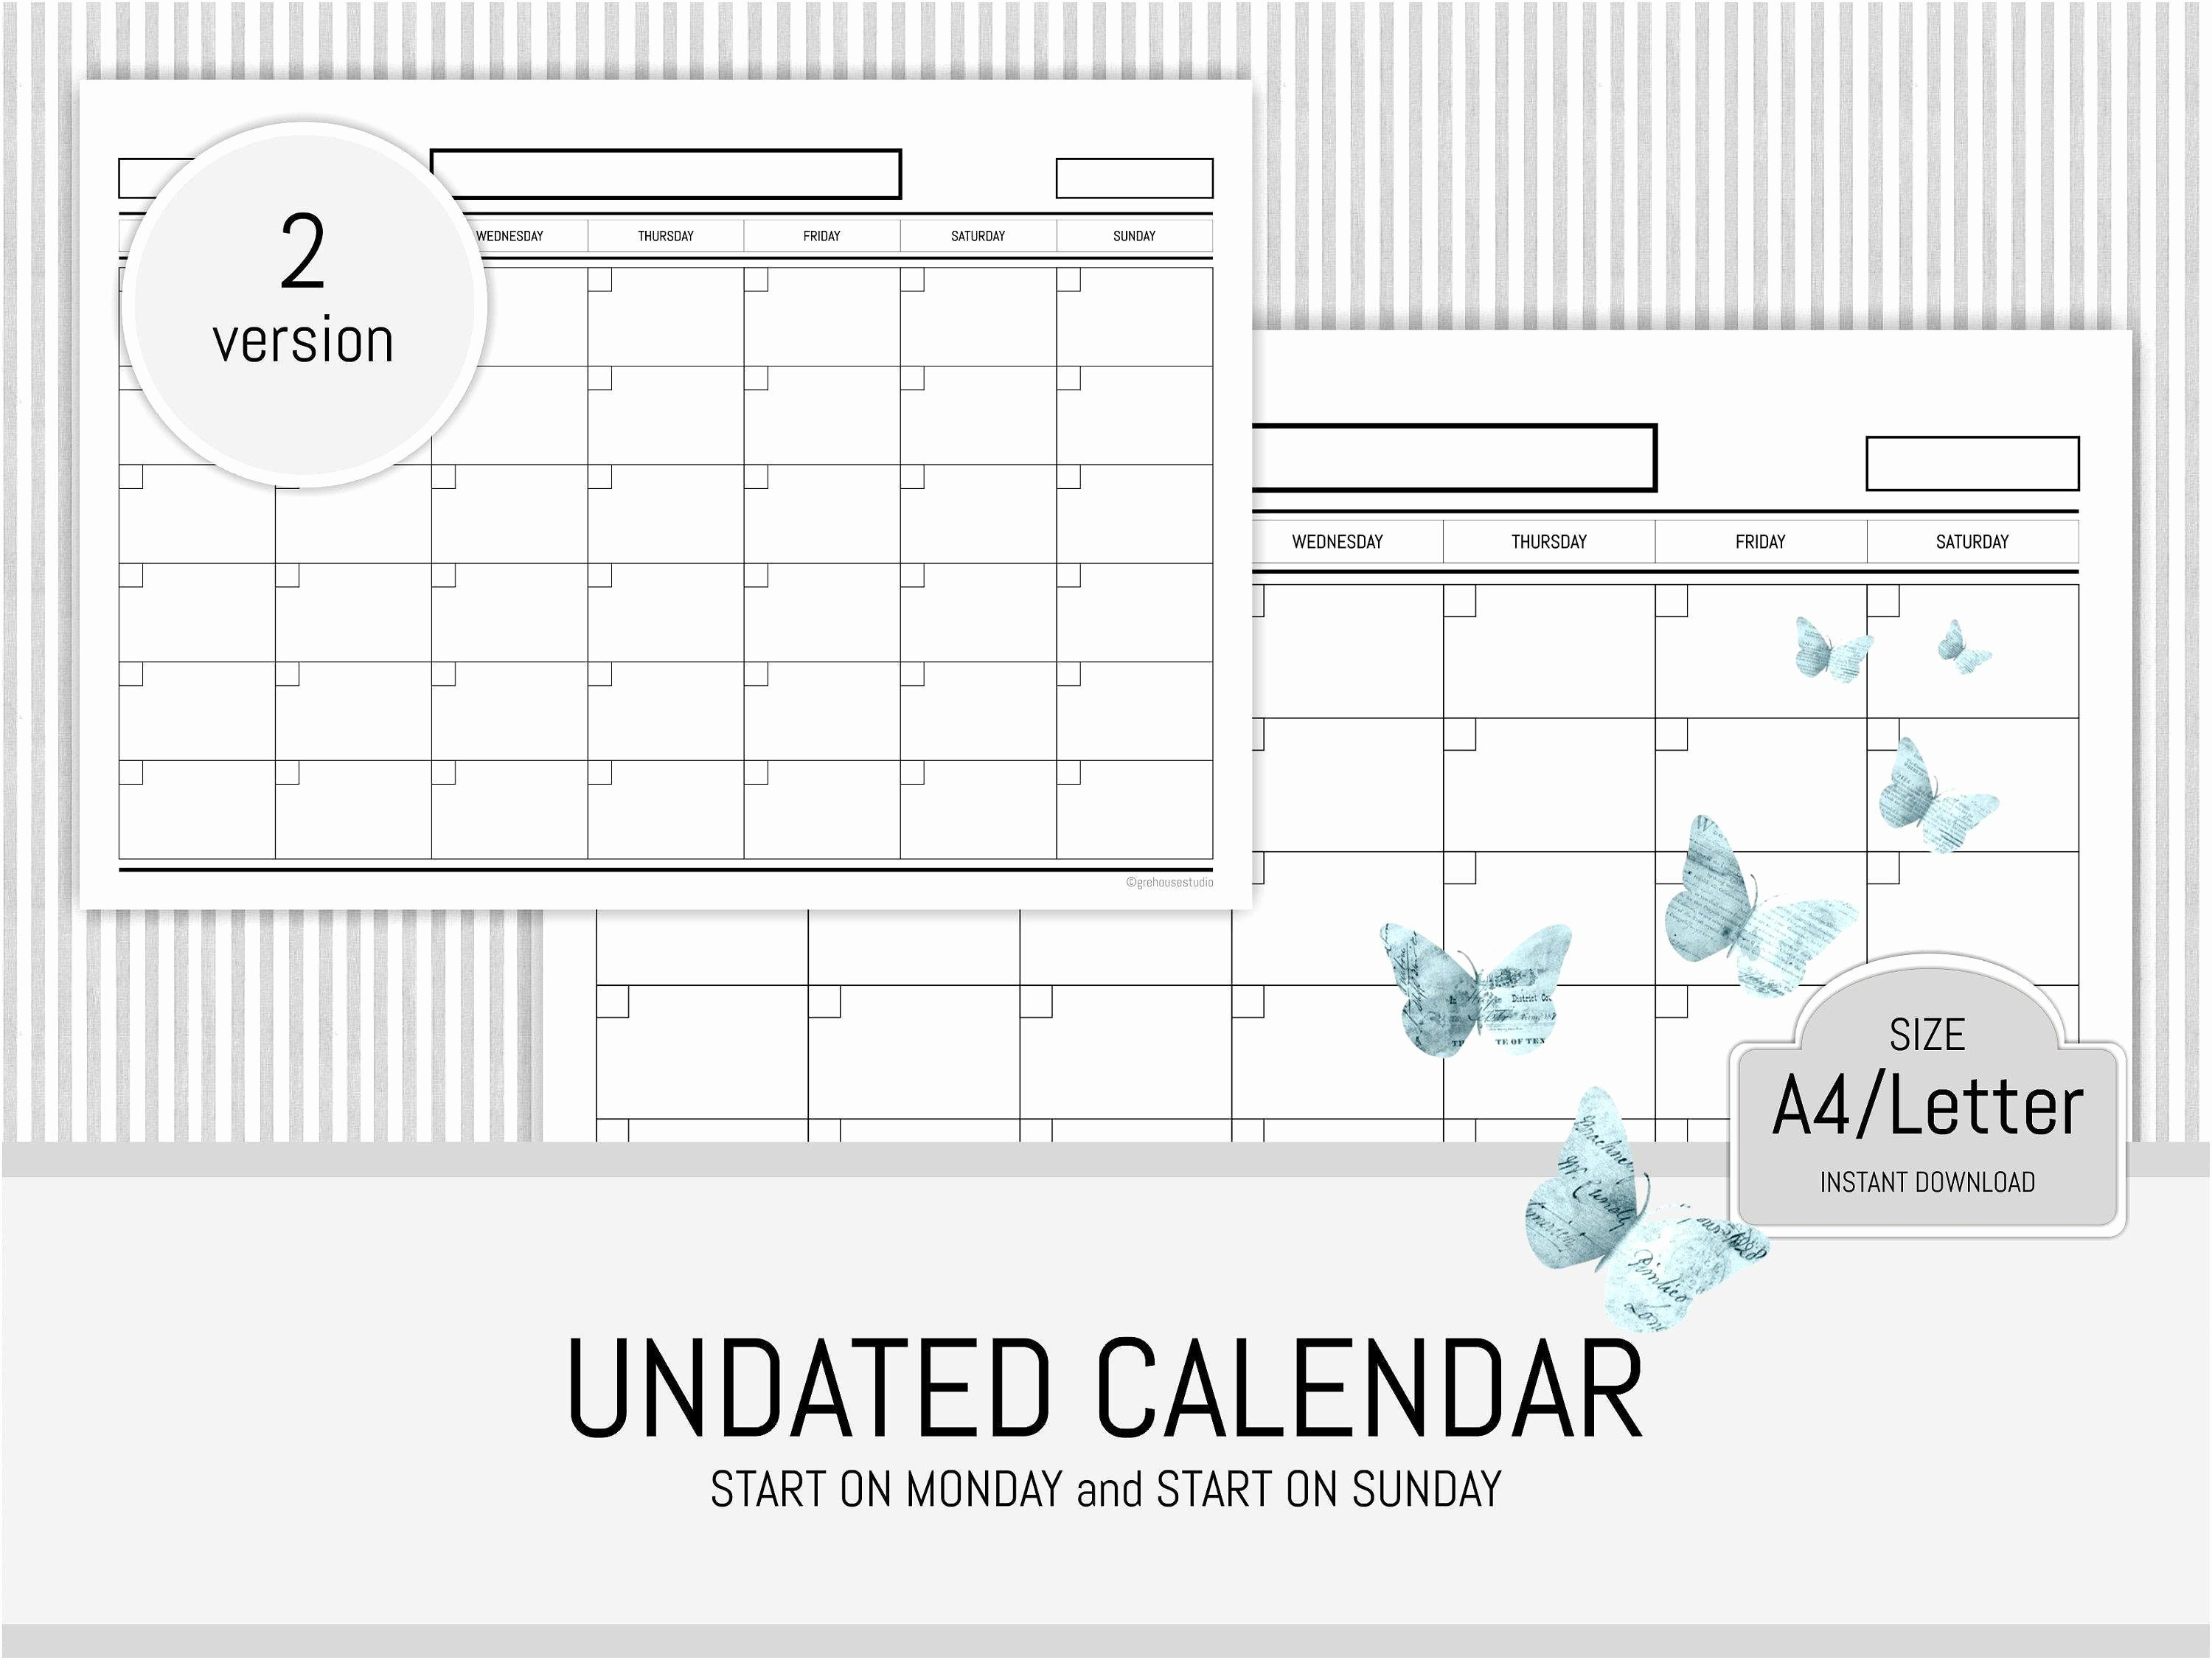 March 31 Calendar Más Populares Awesome Powerpoint Calendar Template 2015 Of March 31 Calendar Más Populares Free Calendar Template 2018 ¢Ë†Å¡ Calendar Powerpoint Template Fresh